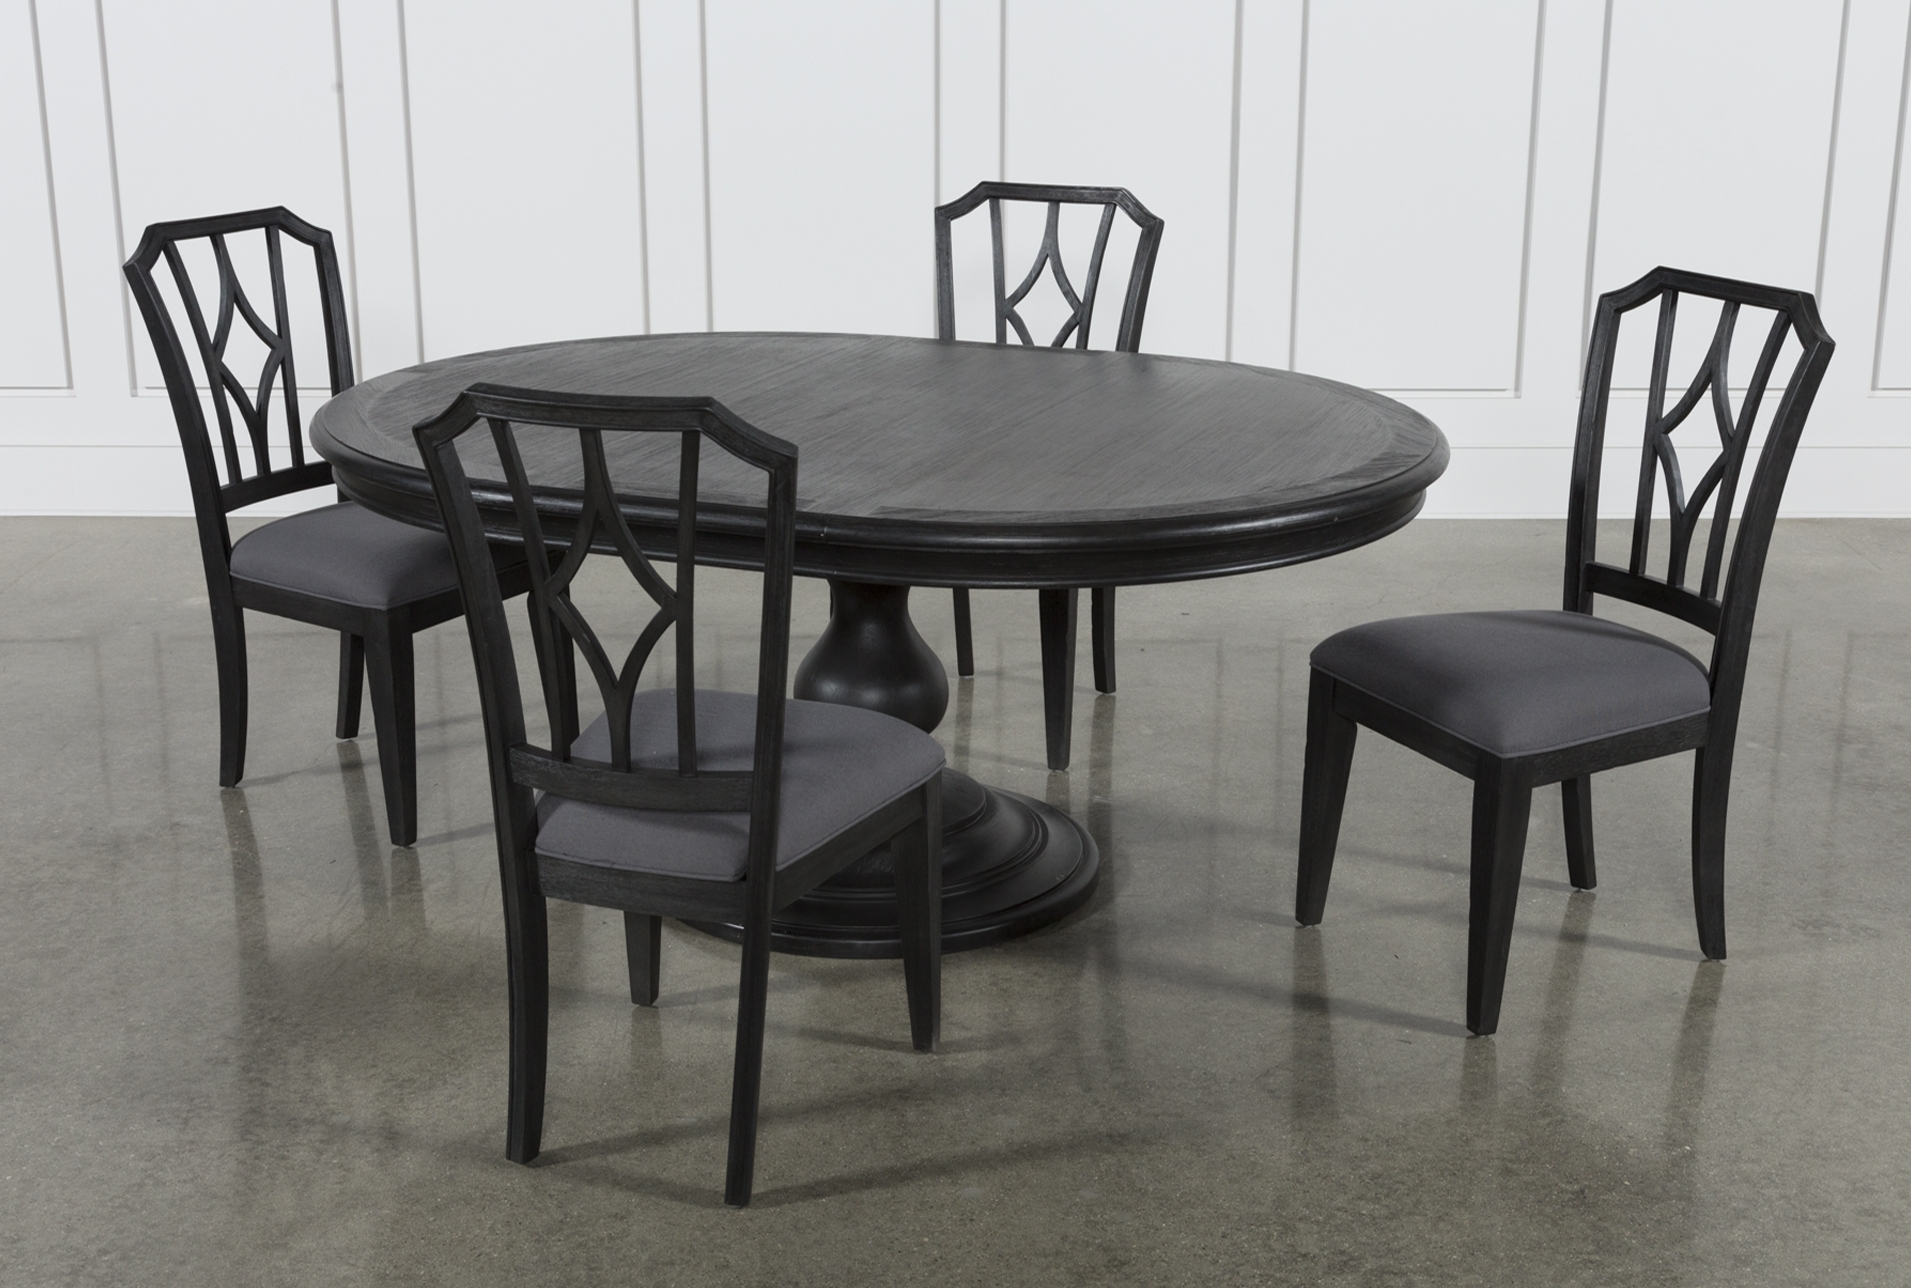 Most Recent Jaxon Grey 5 Piece Round Extension Dining Sets With Wood Chairs Intended For Global Furniture Bar Table Black (Gallery 24 of 25)